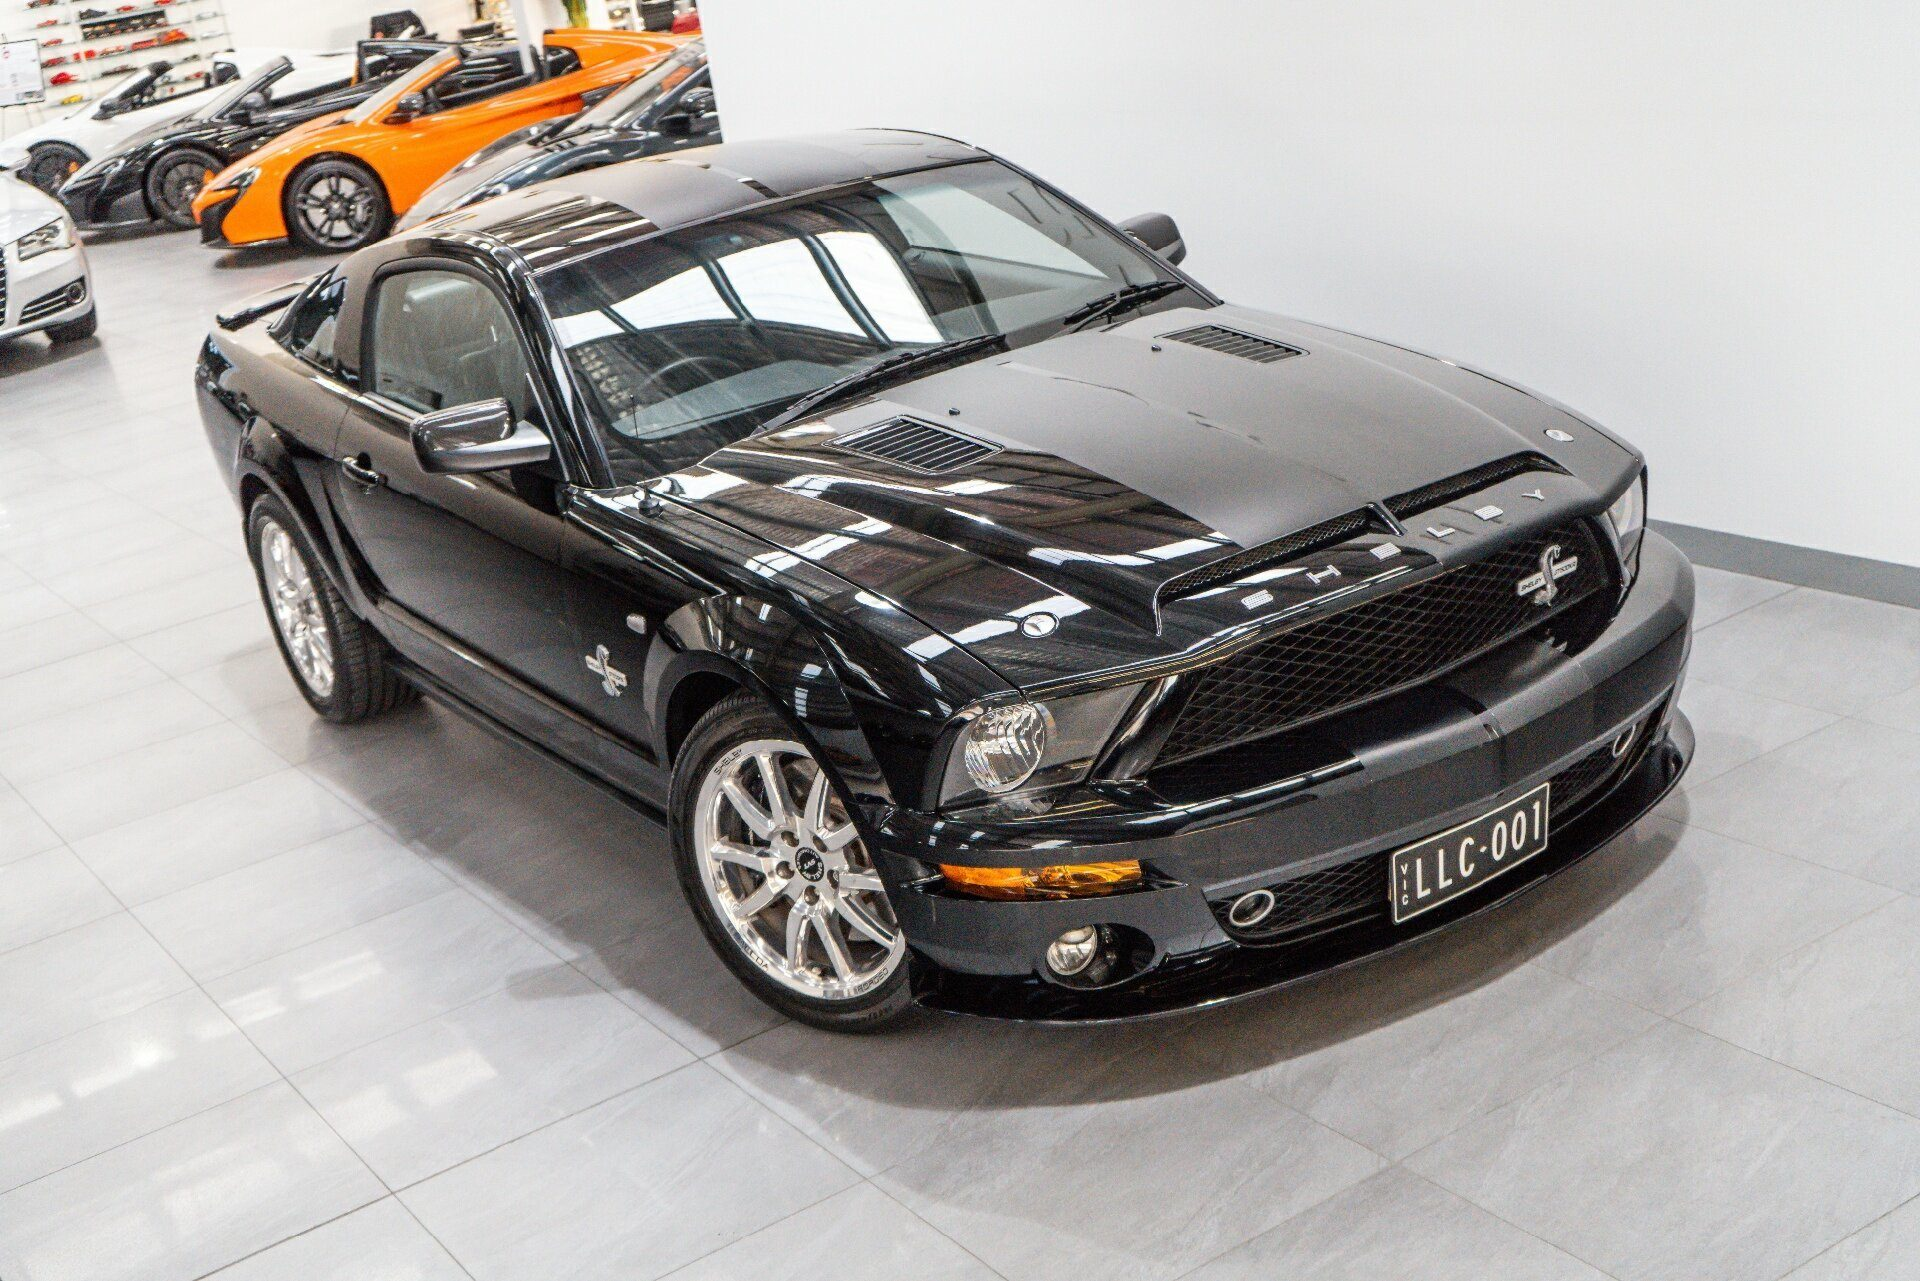 2008 Ford Mustang Gt500kr Shelby